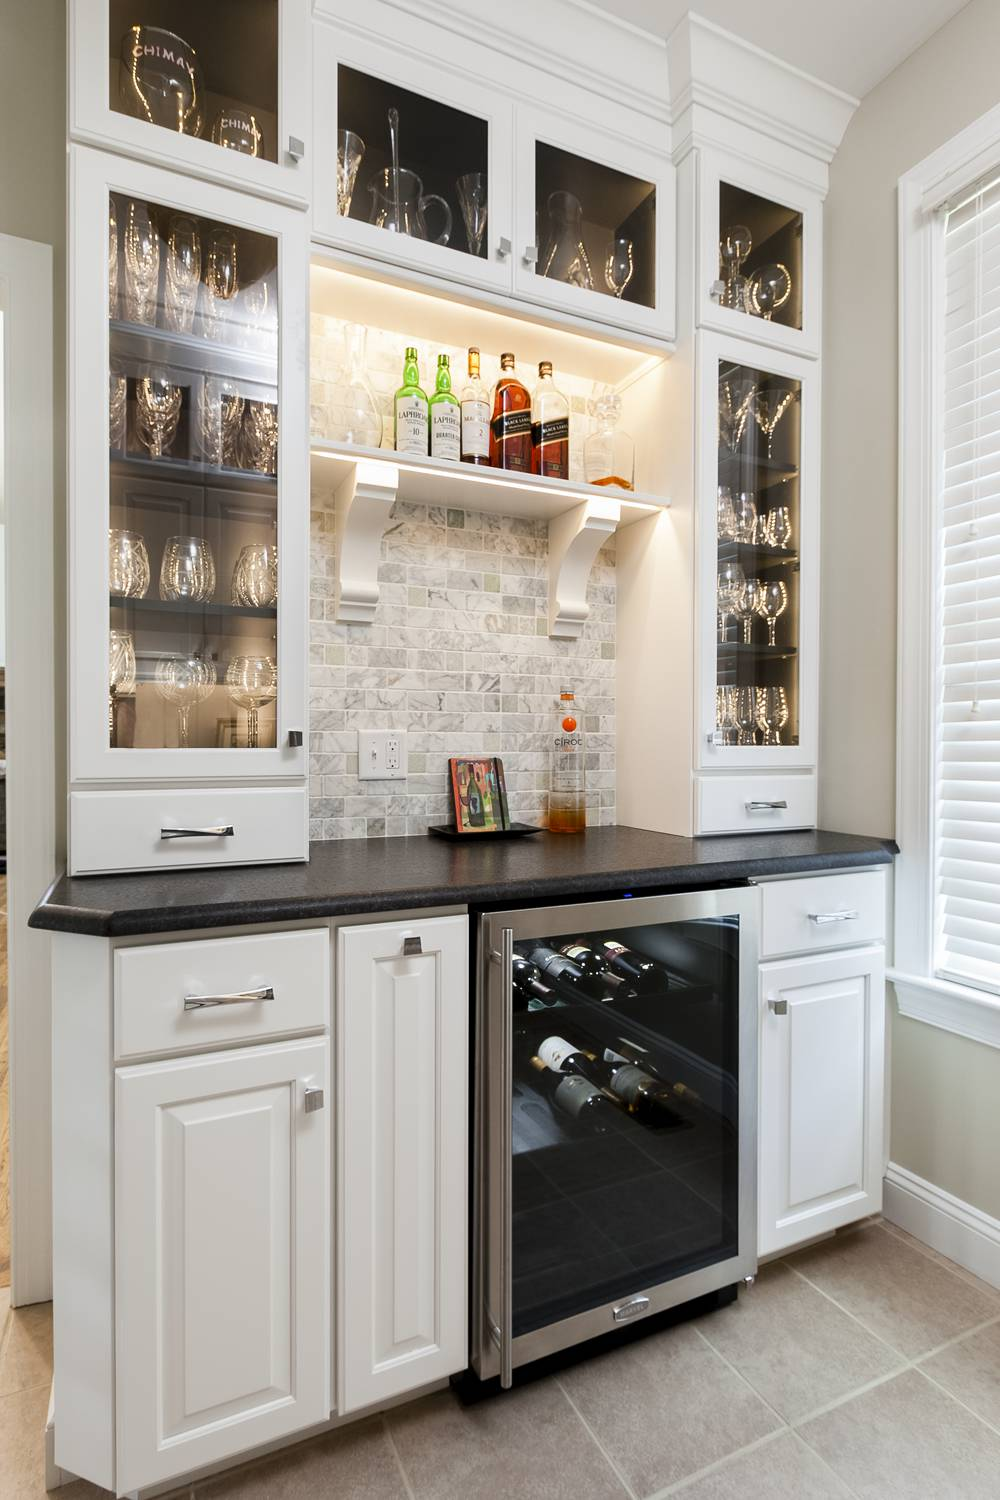 Creating An Open Concept Kitchen Mother Hubbards Custom